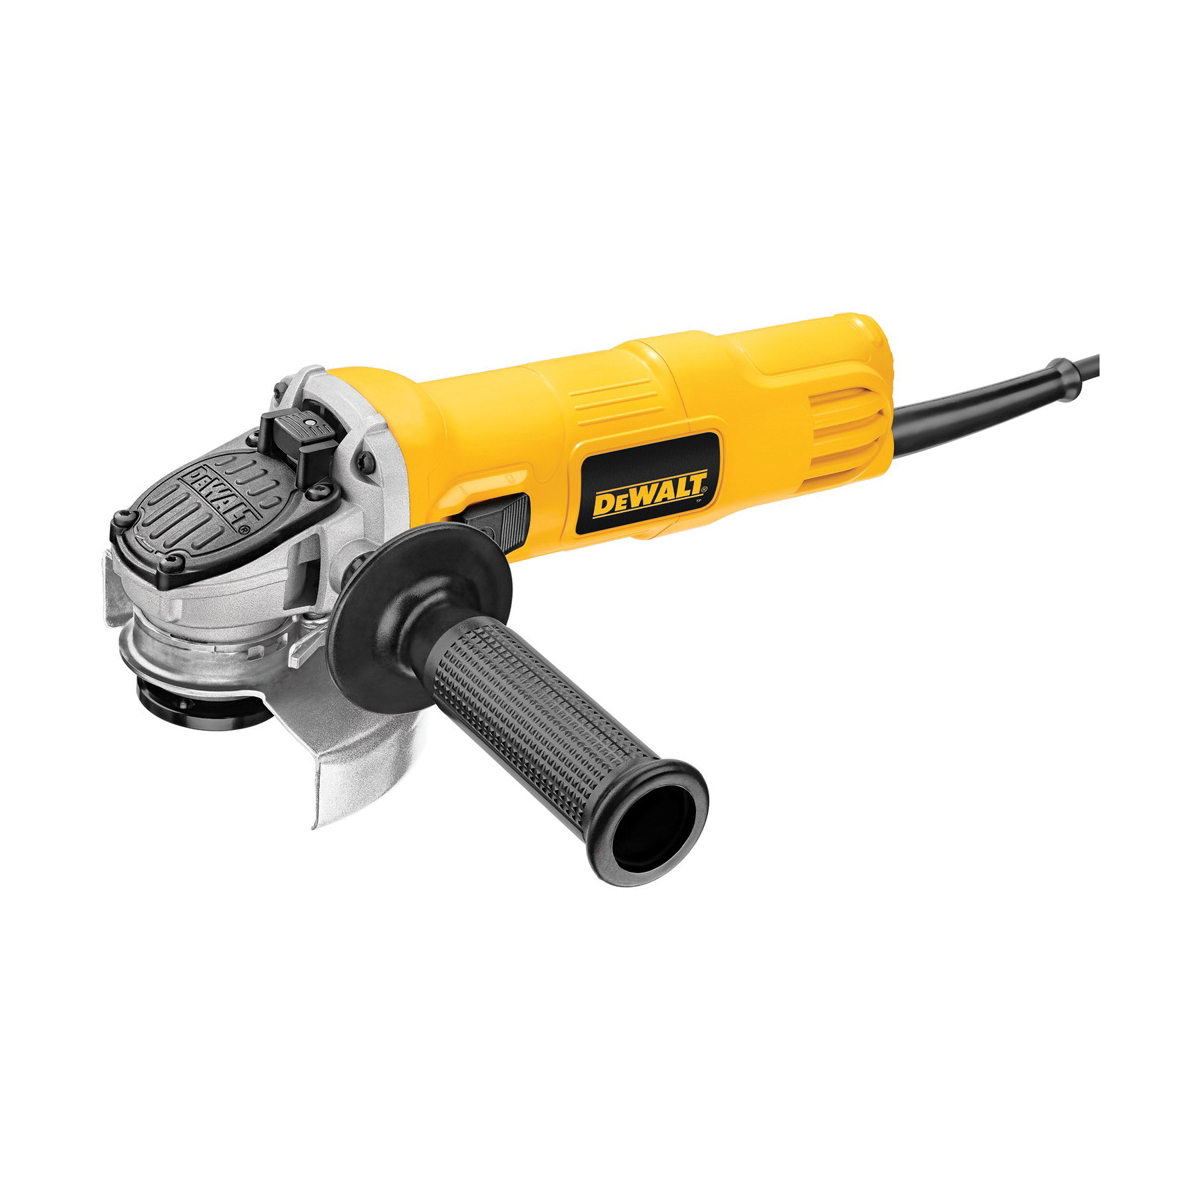 DeWALT® DWE4011 Small Angle Grinder, 4-1/2 in Dia Wheel, 5/8-11 Arbor/Shank, 120 VAC, For Wheel: Quick-Change™, Yellow, No, Slide Switch